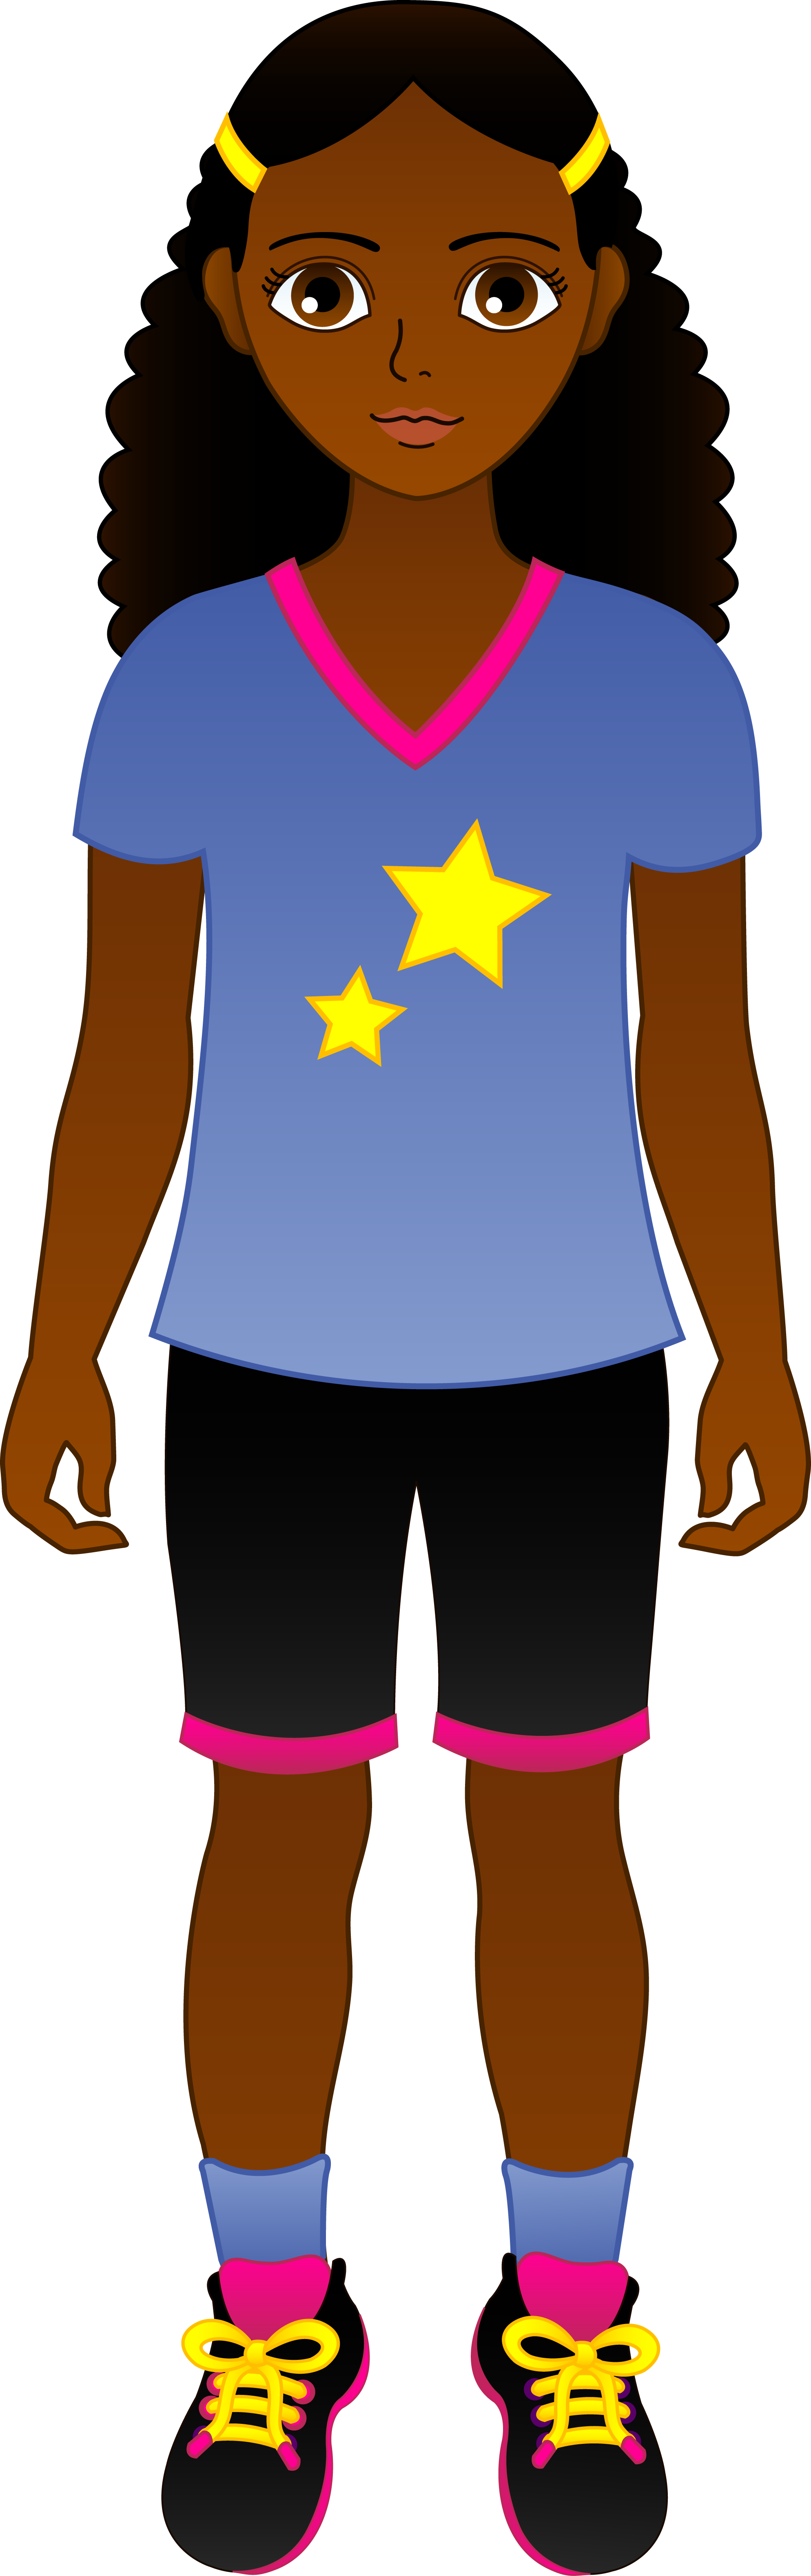 Free Black Girl Cliparts, Download Free Clip Art, Free Clip.